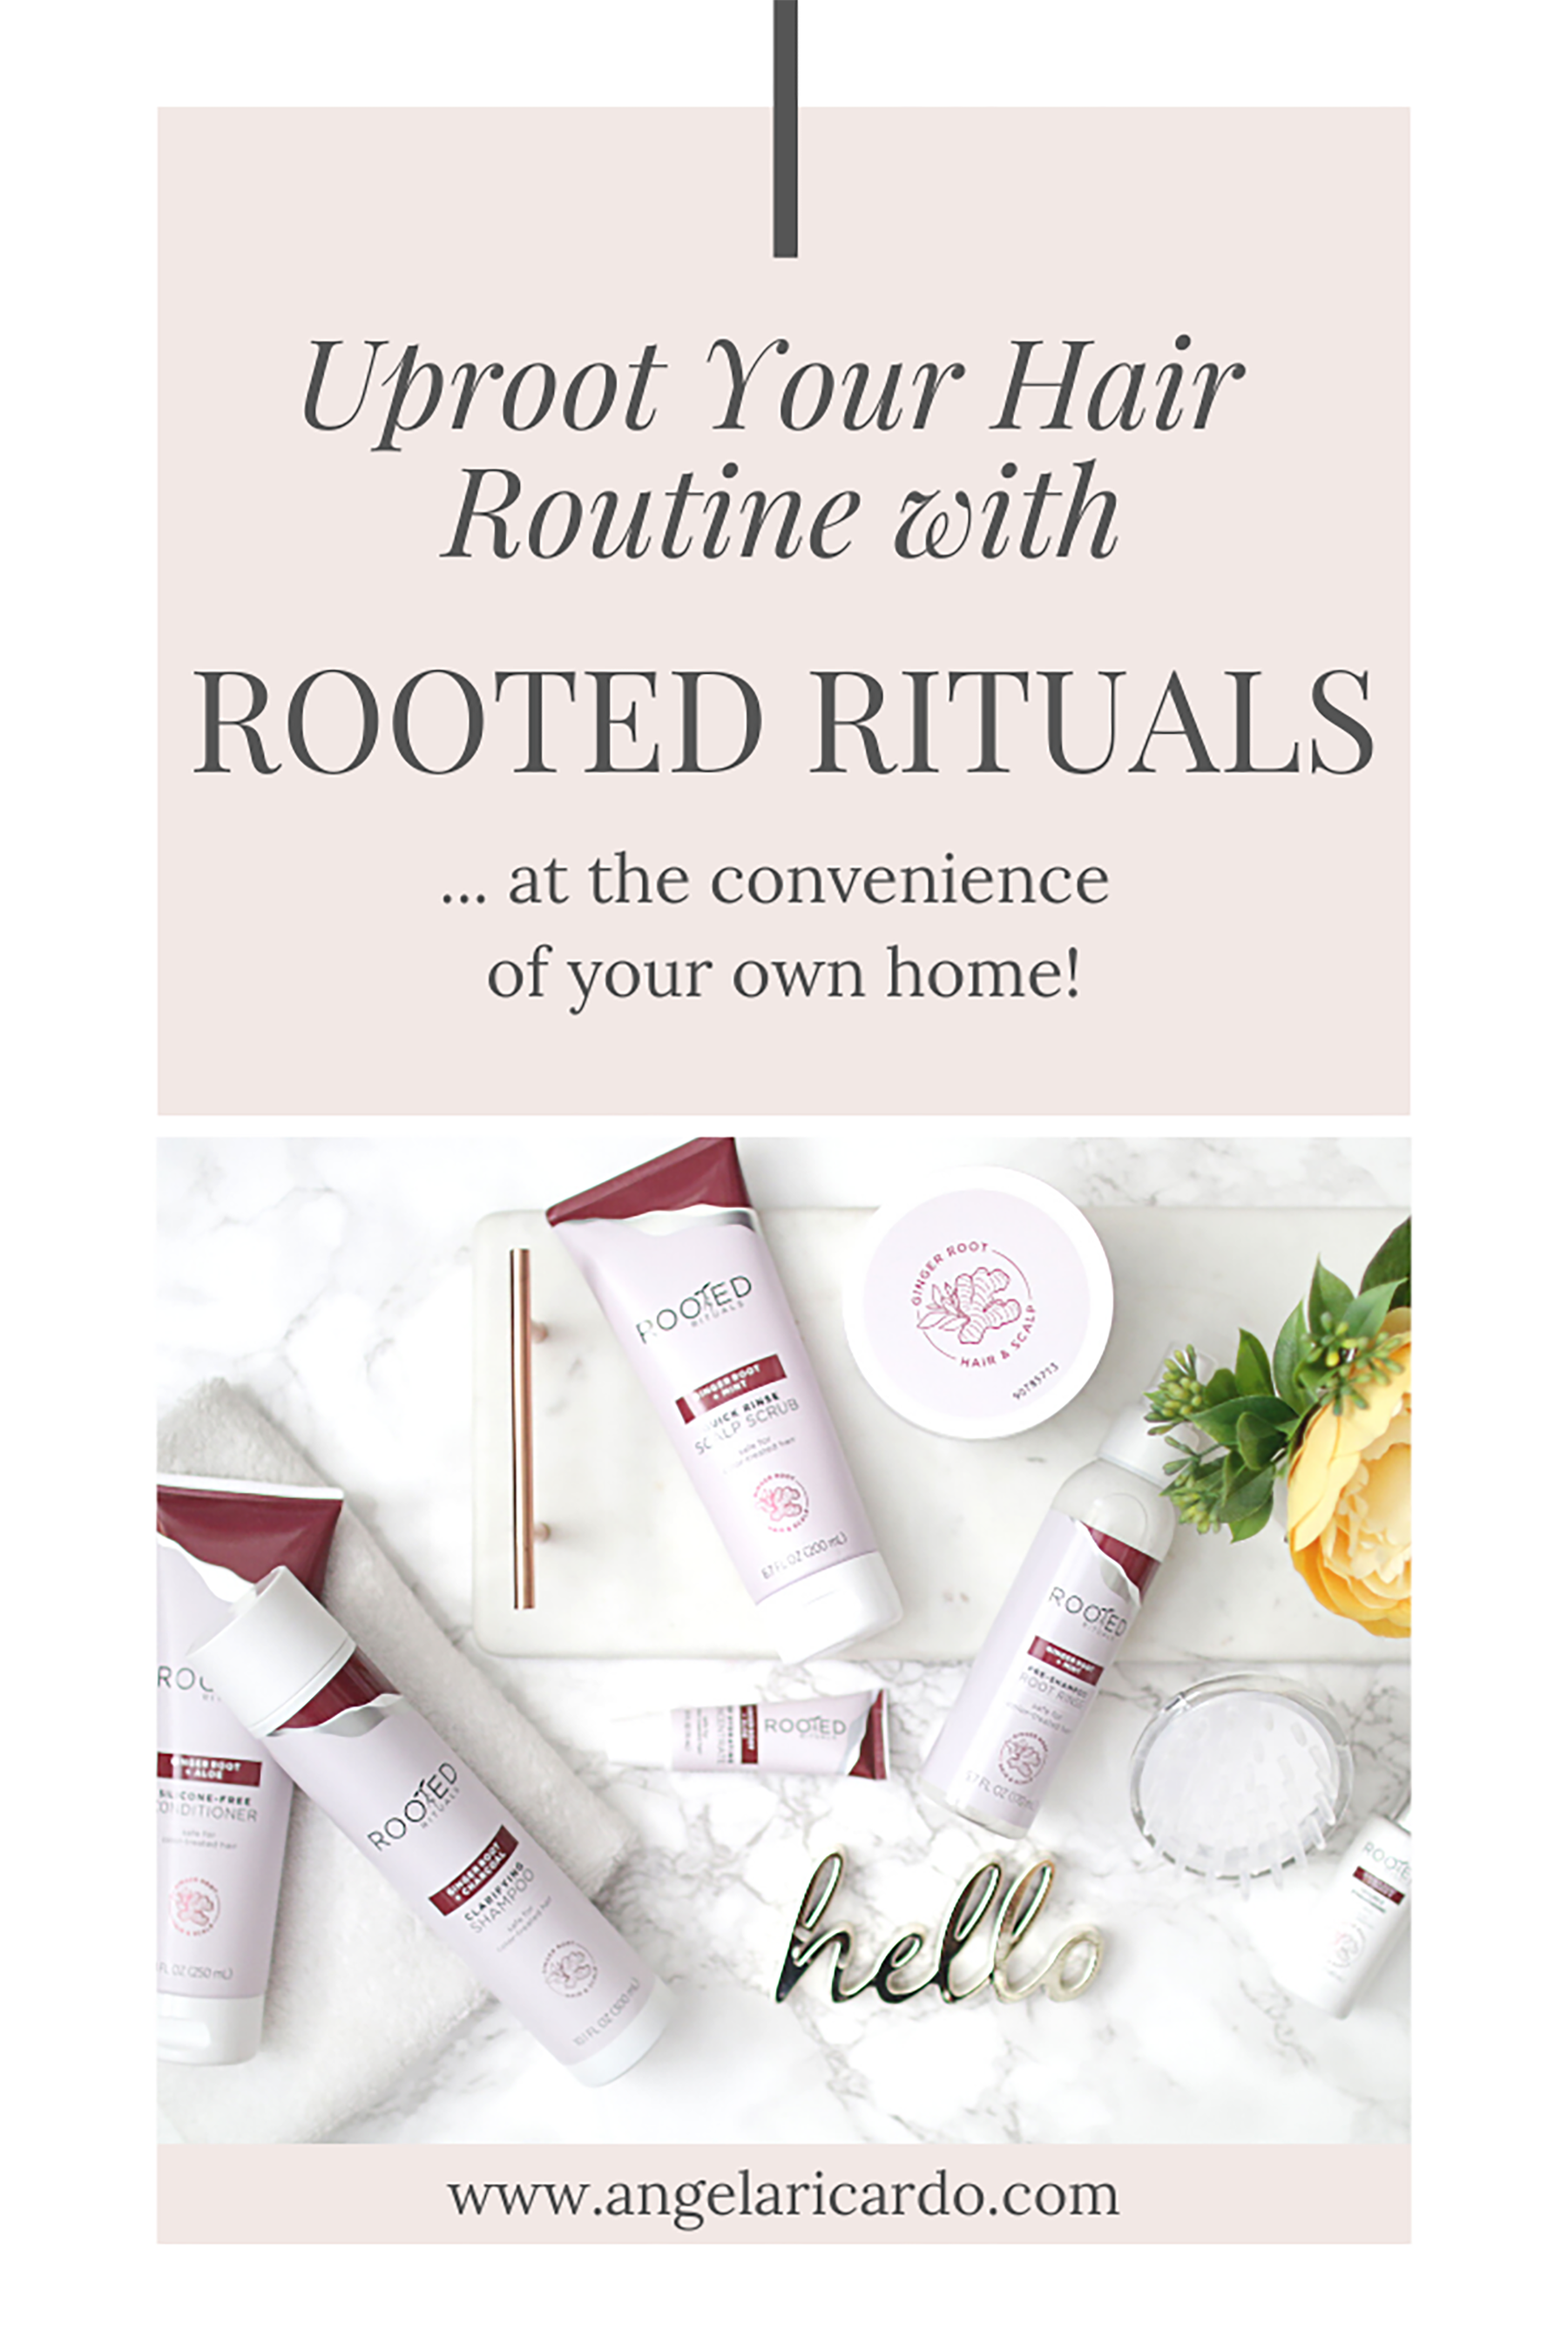 Rooted Rituals